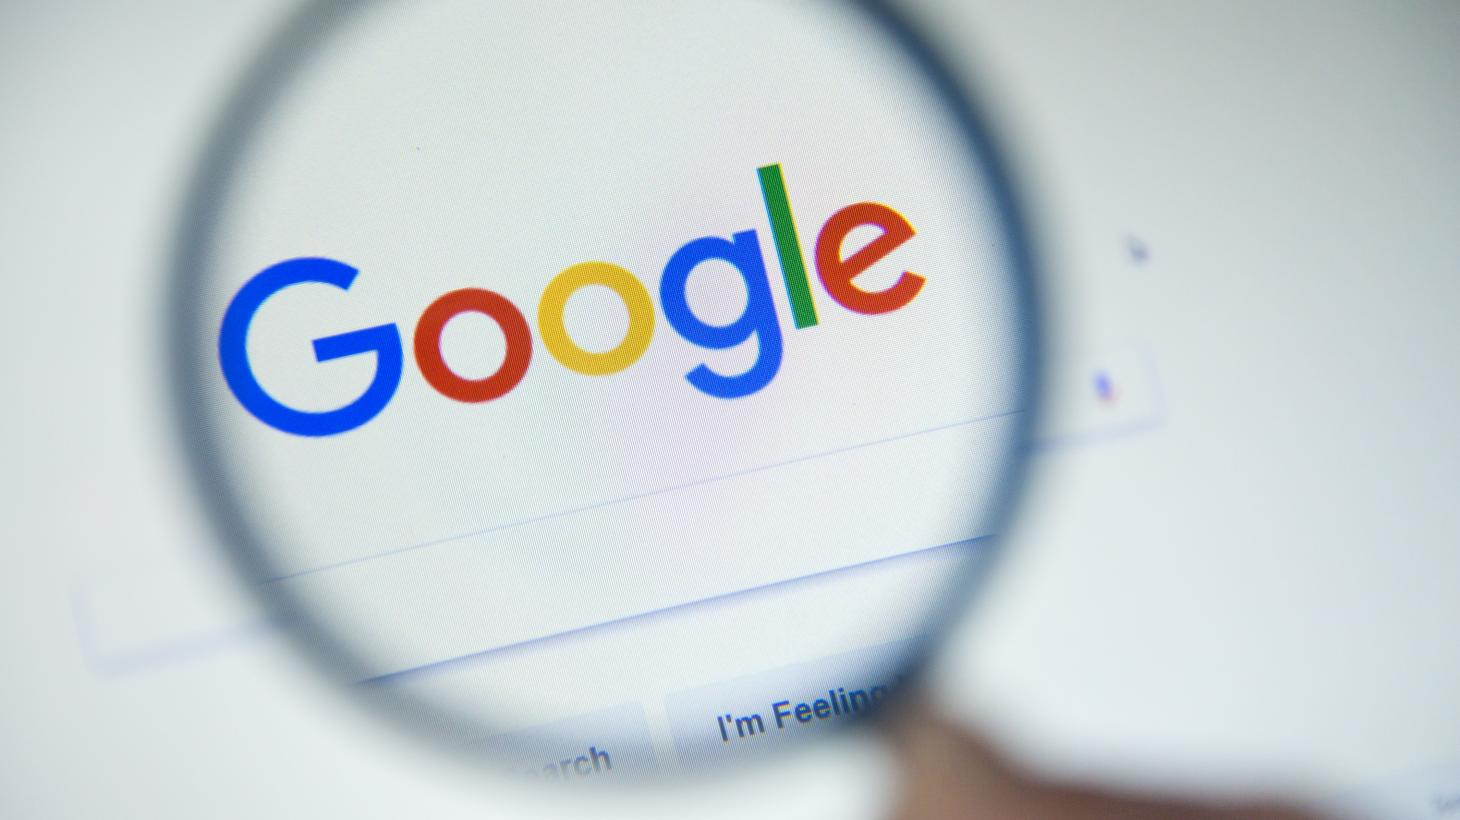 Google.fr homepage on the screen under a magnifying glass. Google is world's most popular search engine